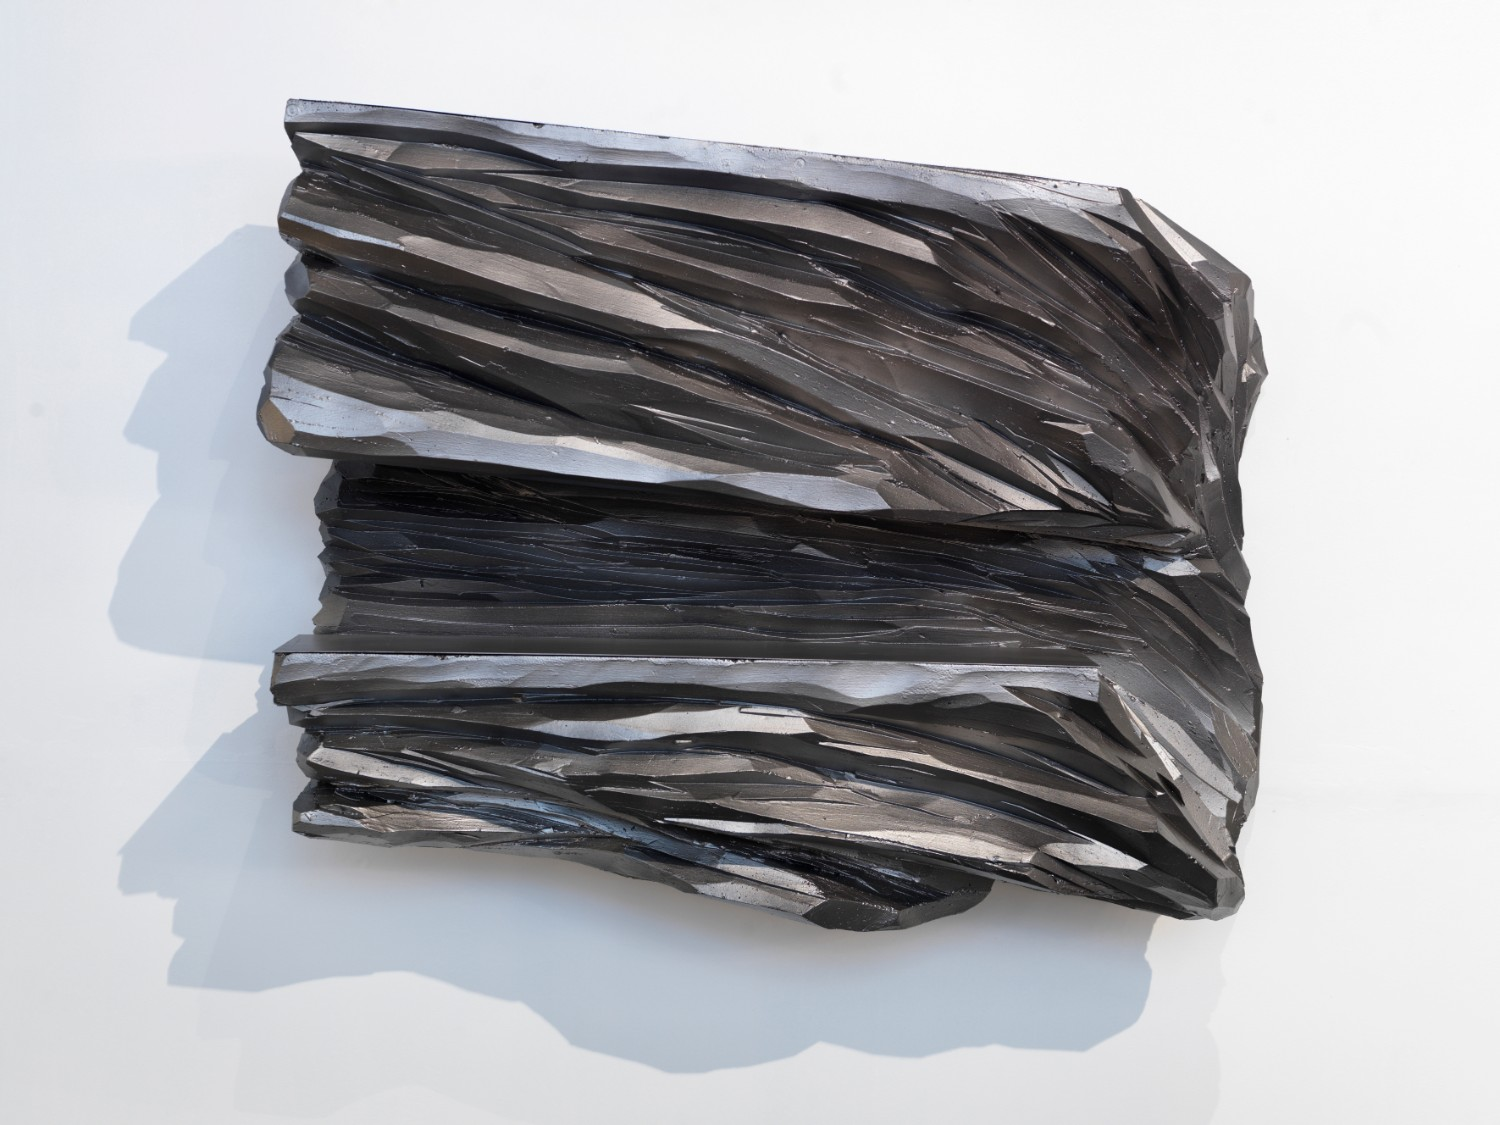 Gisela_Stiegler_Console_Stainless_Steel_frontal_MarionFriedmannGallery.jpg